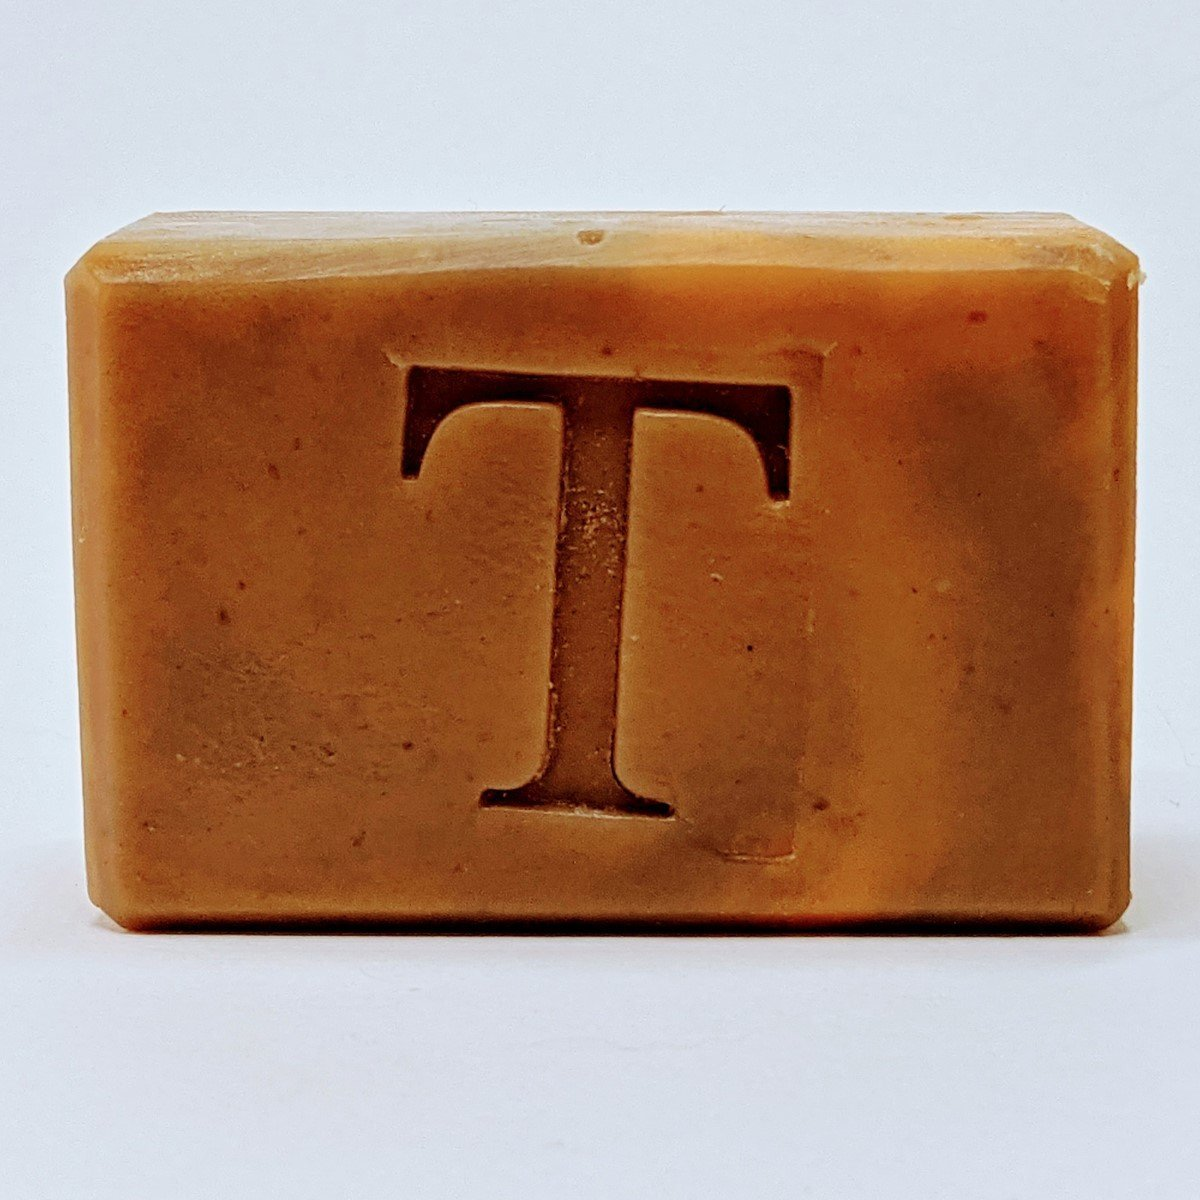 Orange & Spice Goat's Milk All Natural Soap Bar with Essential Oils, Oatmeal and Shea butters - Thompson's Luxury Soap